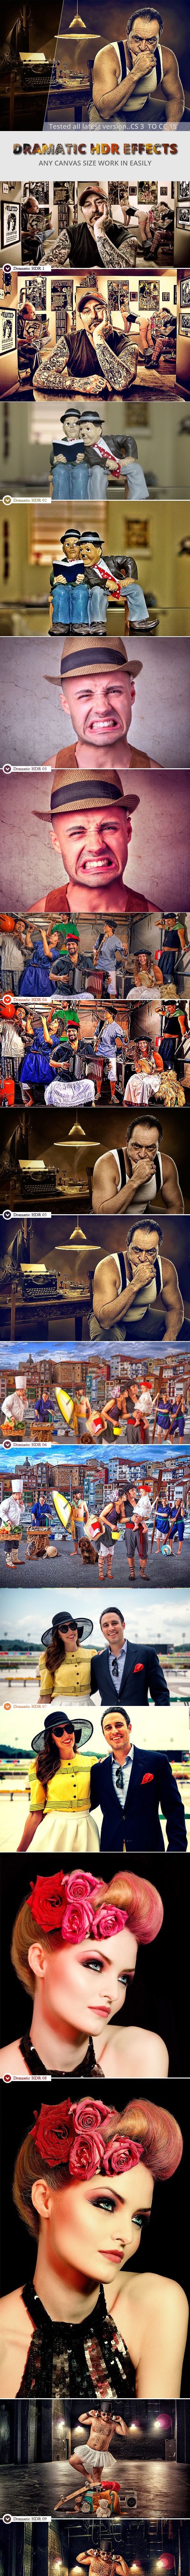 Dramatic HDR Photo Effect - Photo Effects Actions